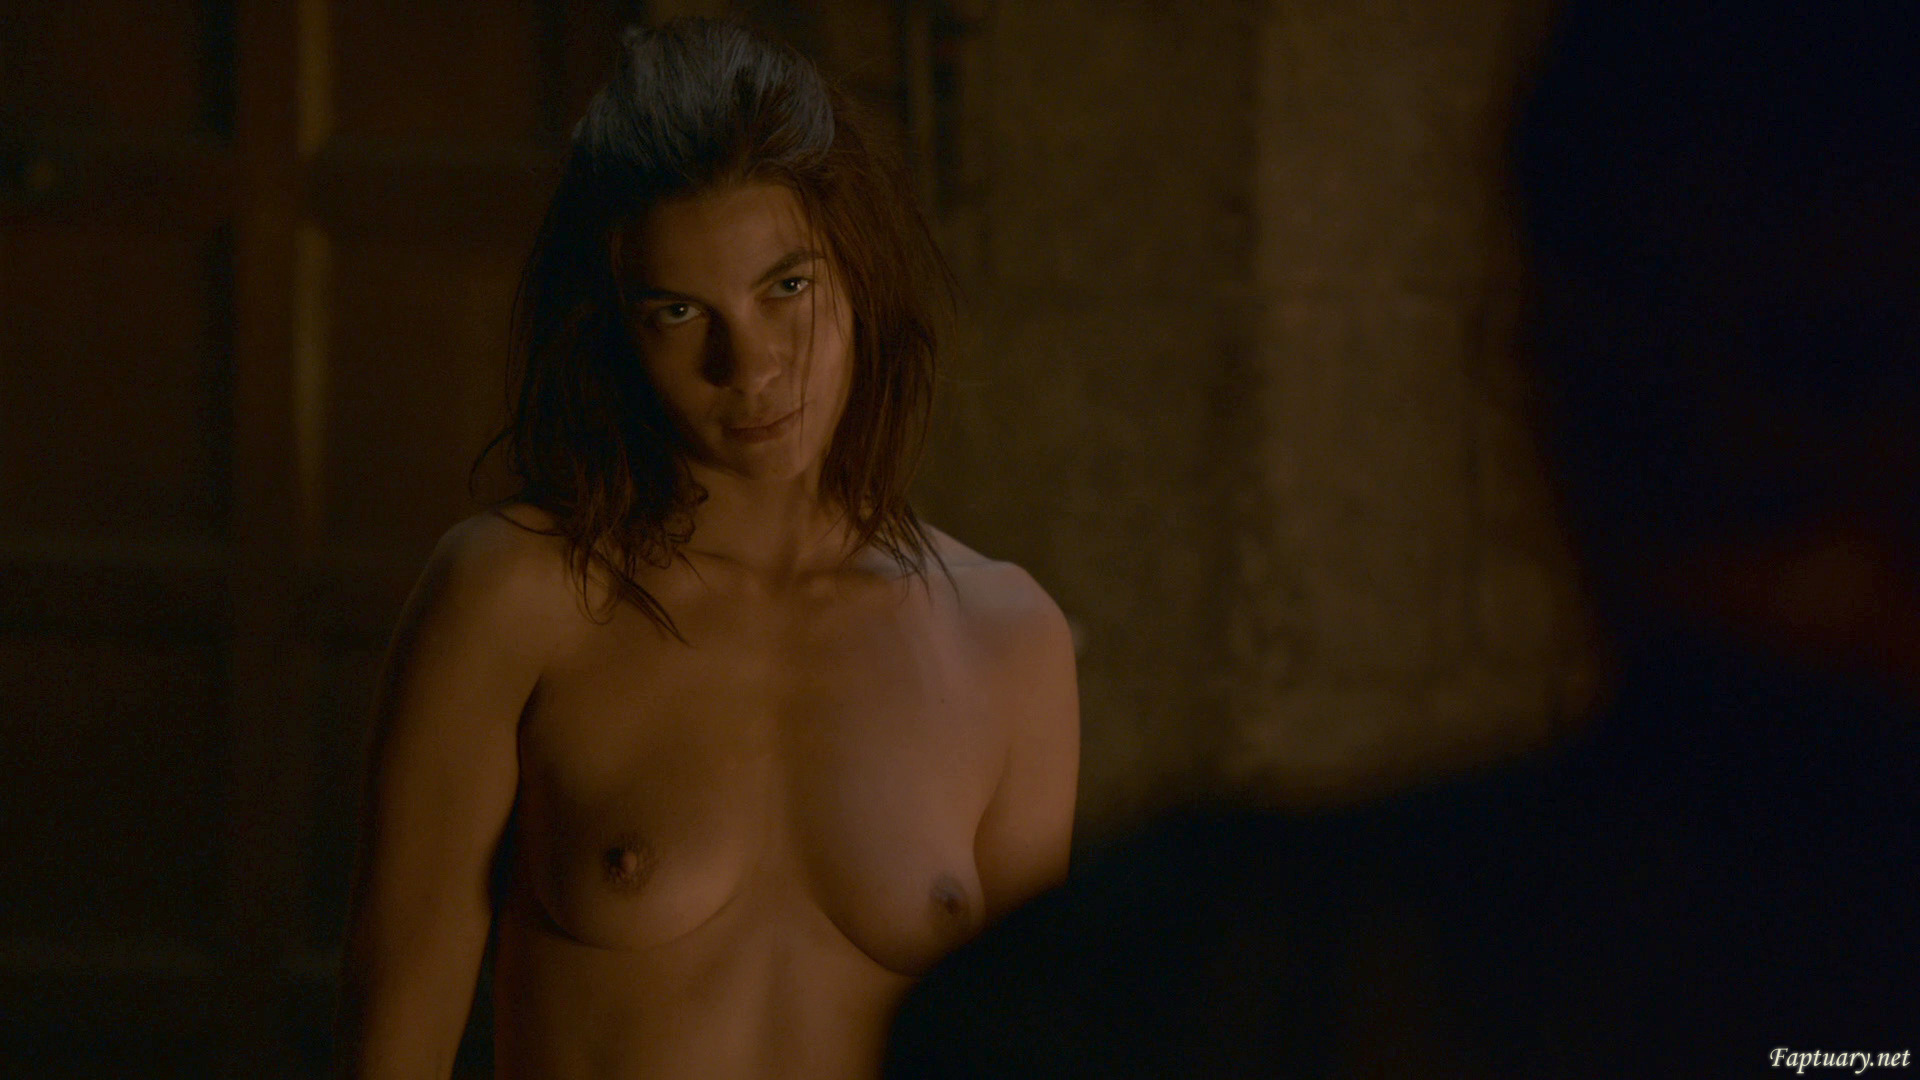 Natalia Tena tits nude Game of thrones #topless